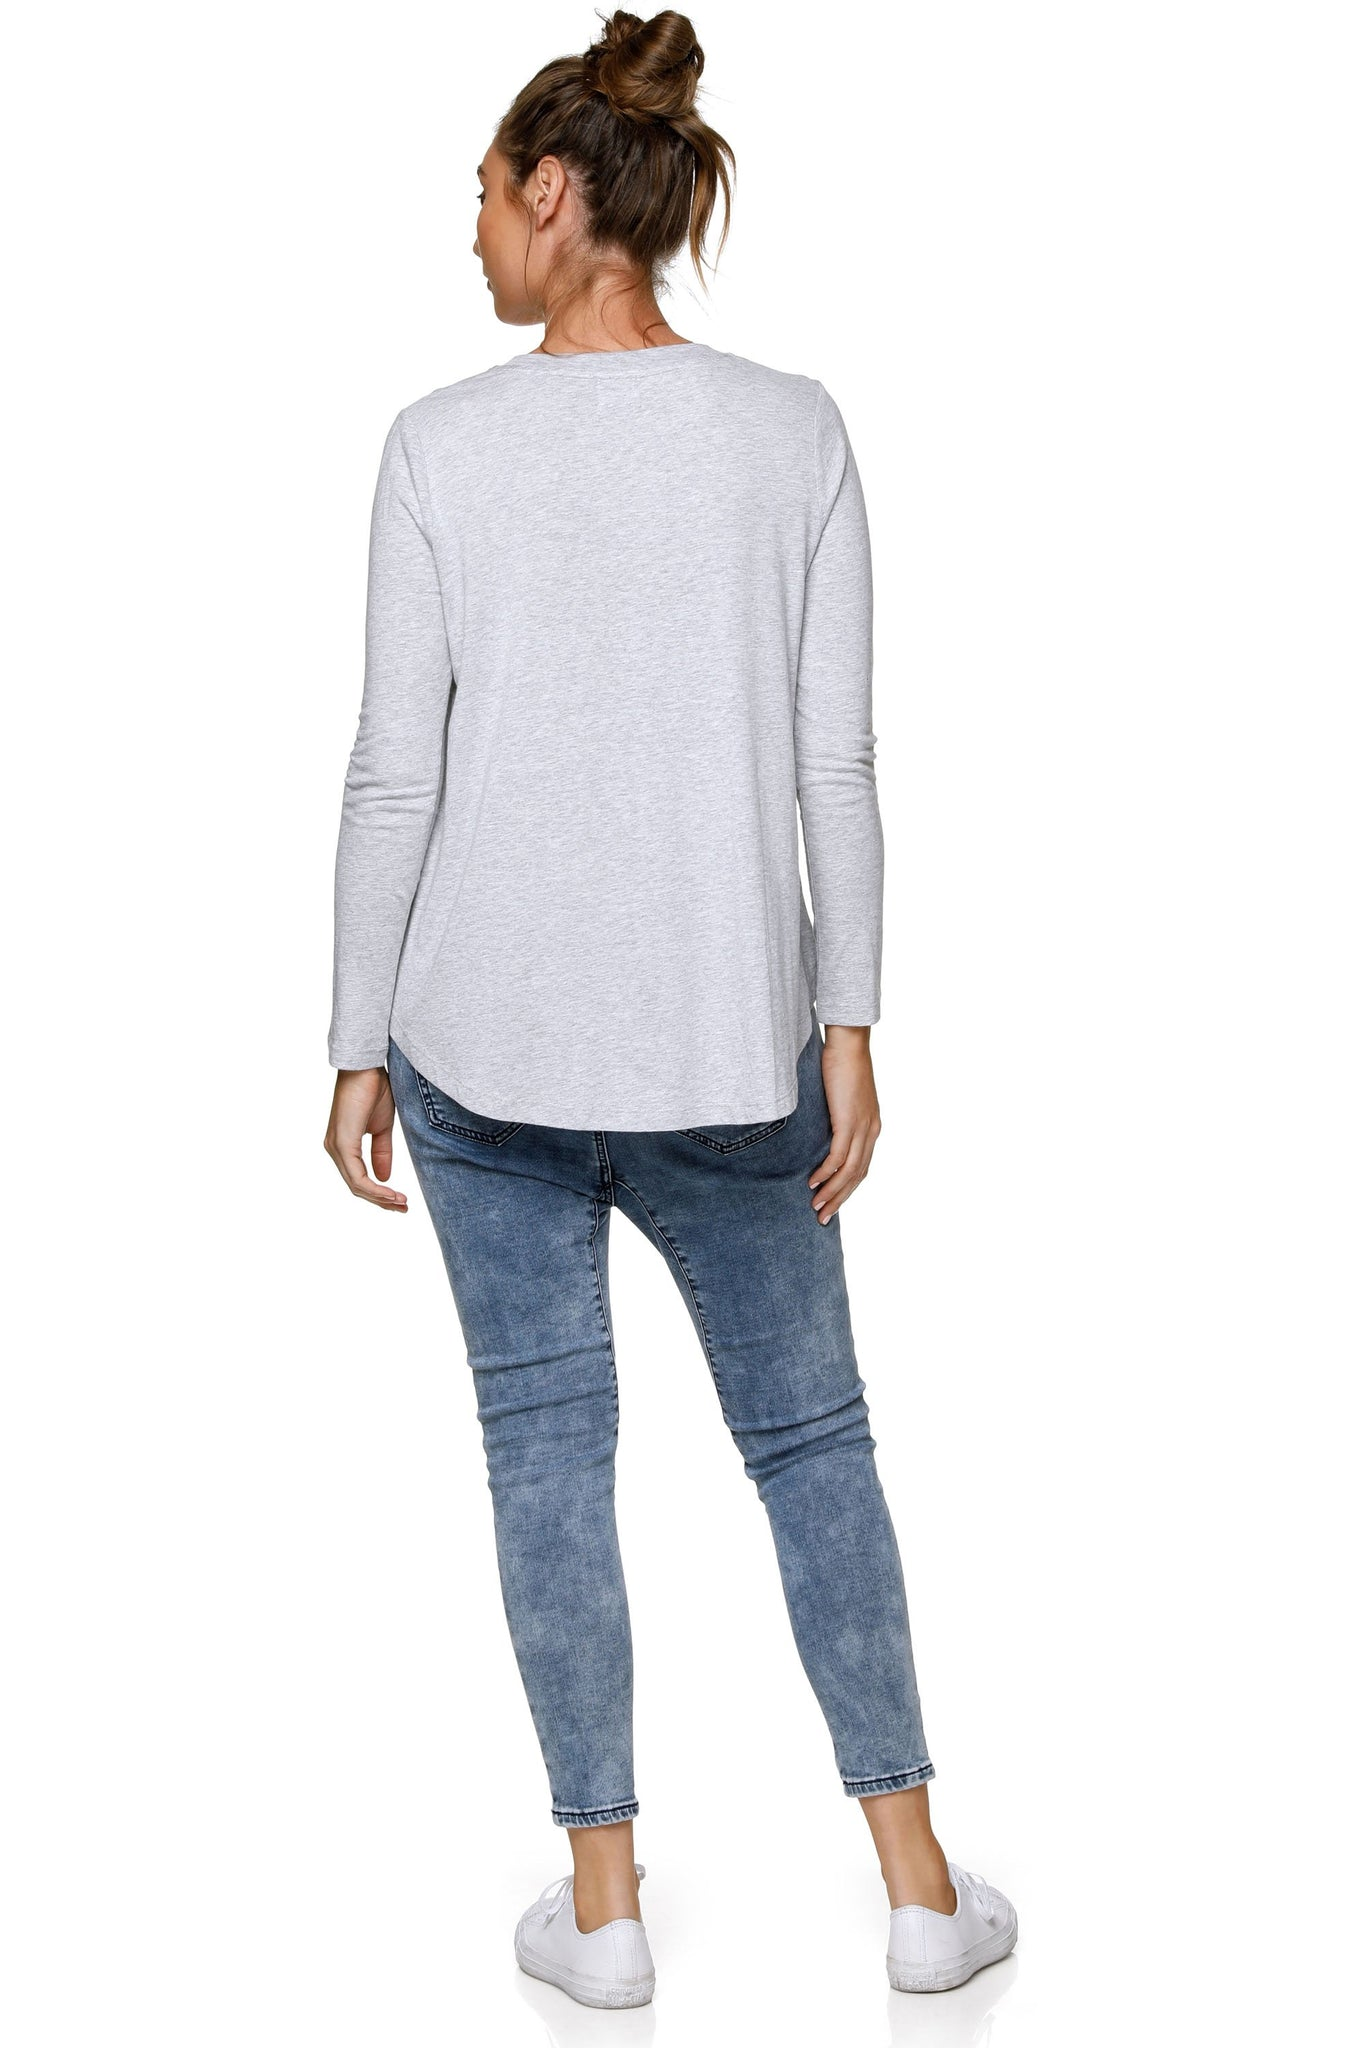 Maternity Long Sleeve Top - Grey Marle 9